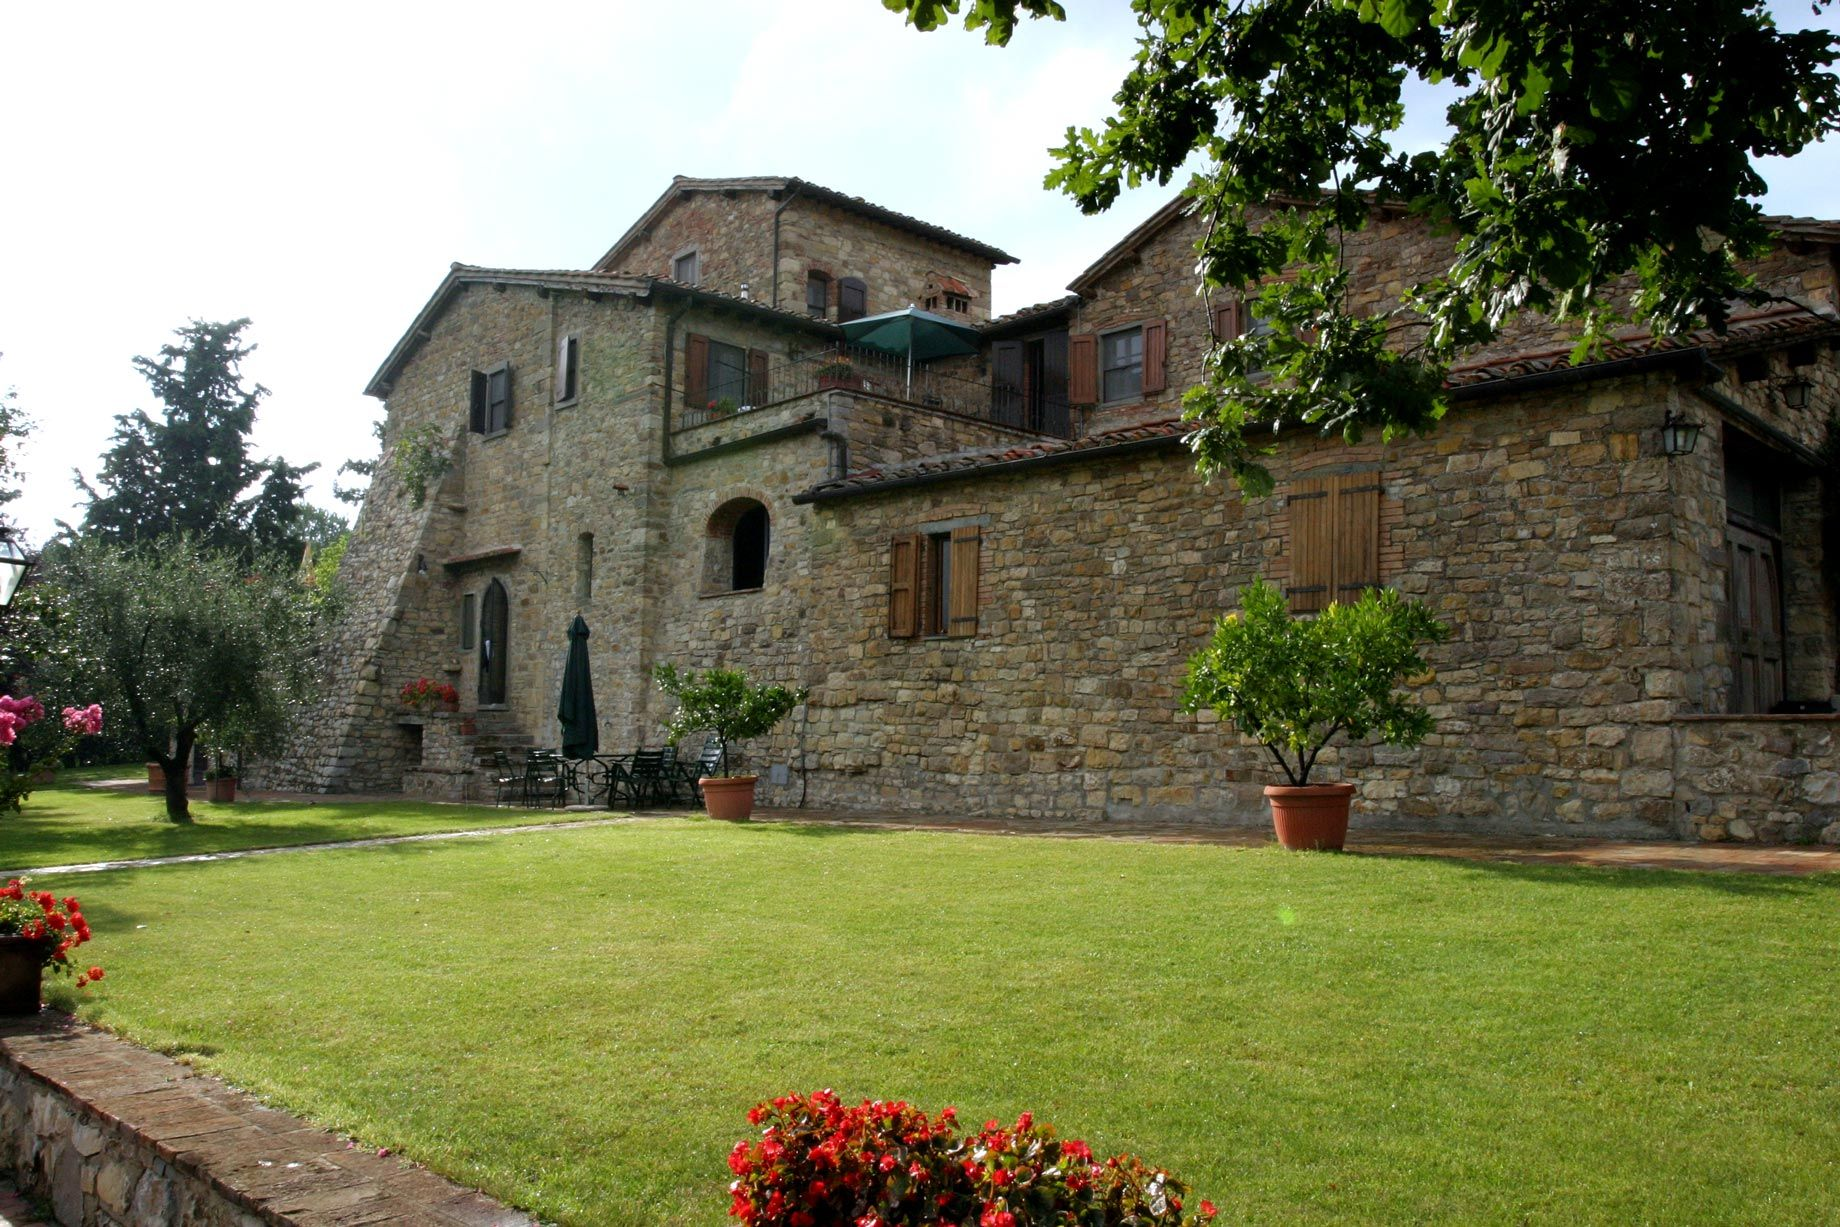 Organic farmhouse in Tuscany   Palagio of Panzano in Chianti They organize guided tours around their wine estate , vineyards, olive groves and wine cellar